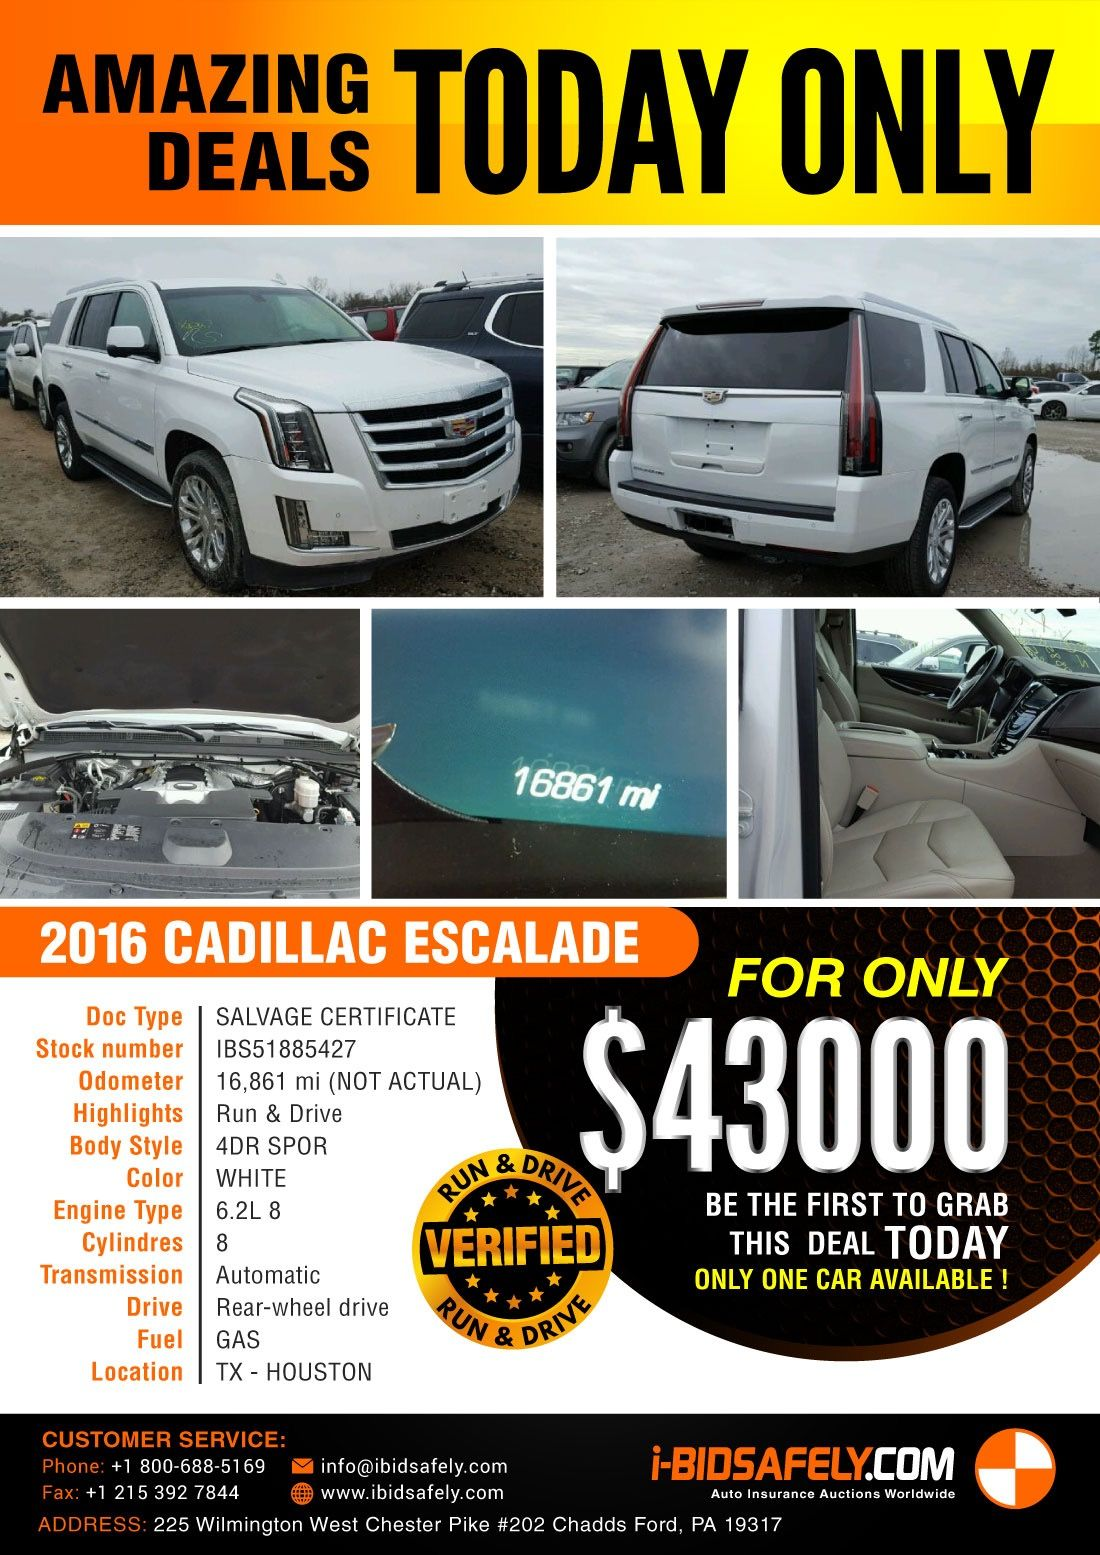 Fast Cash For Any Condition Car, Truck, SUV, Motorcycle, Boat ...